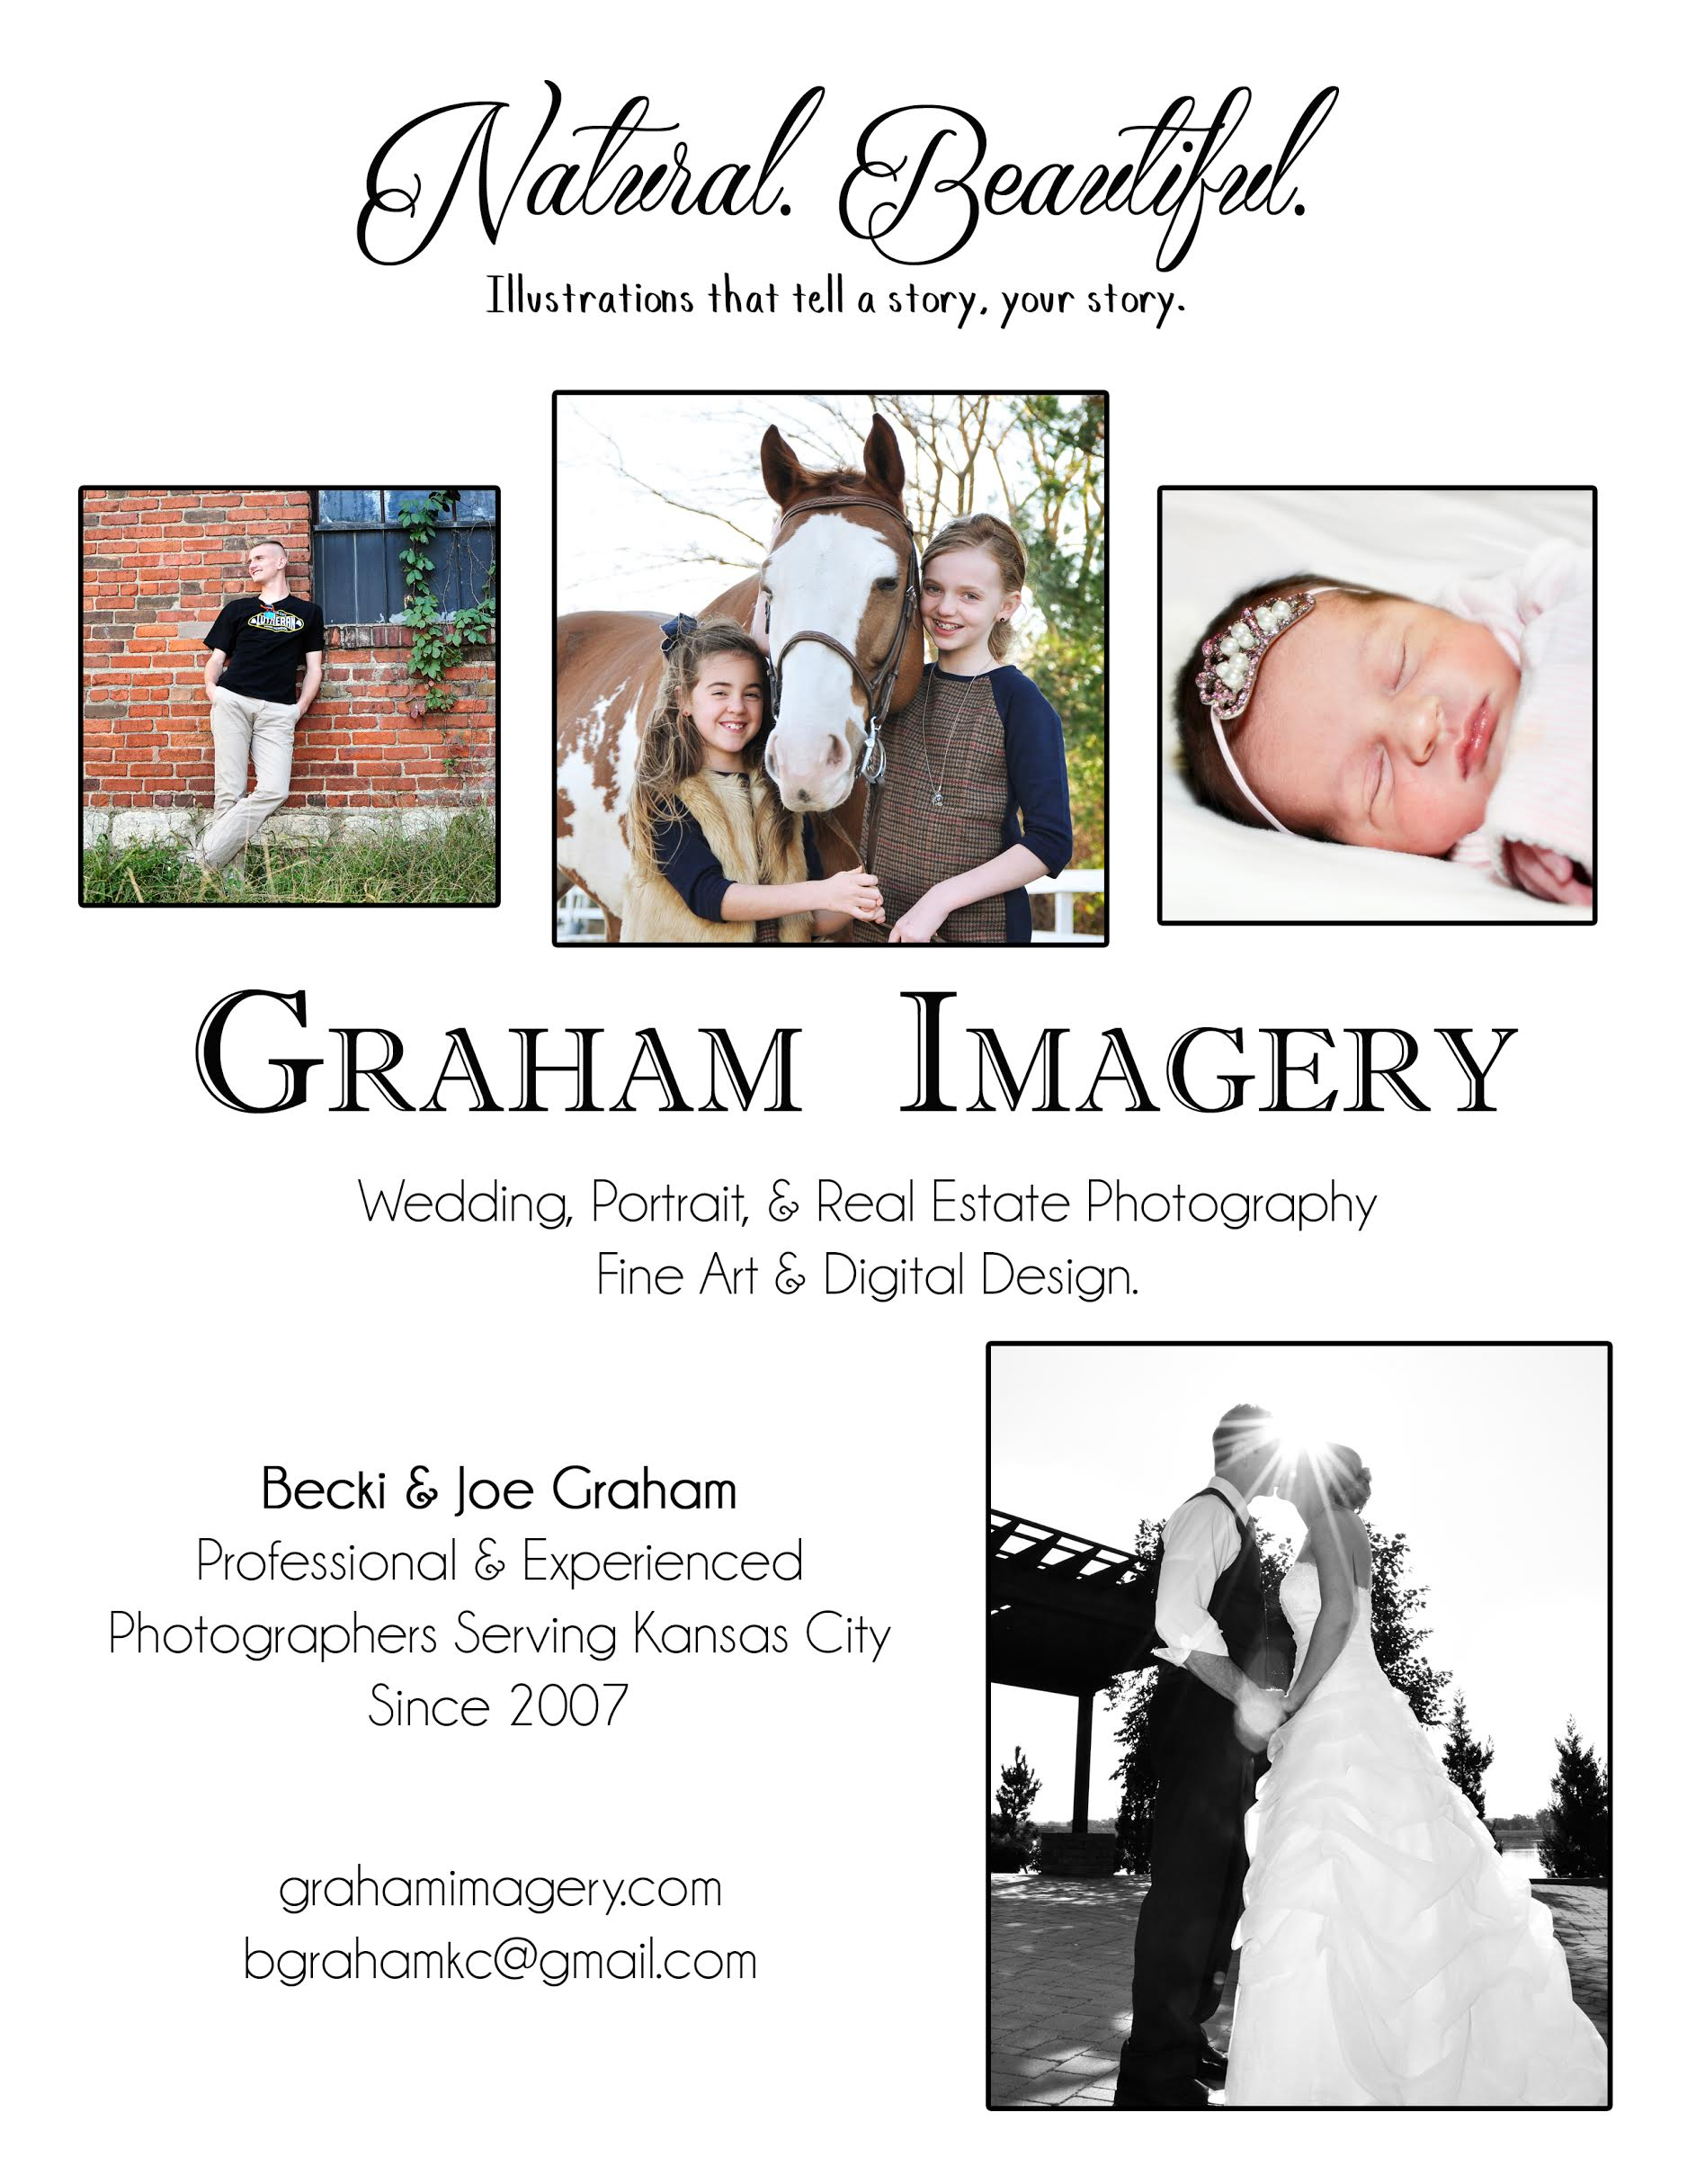 grahamimagery Ad